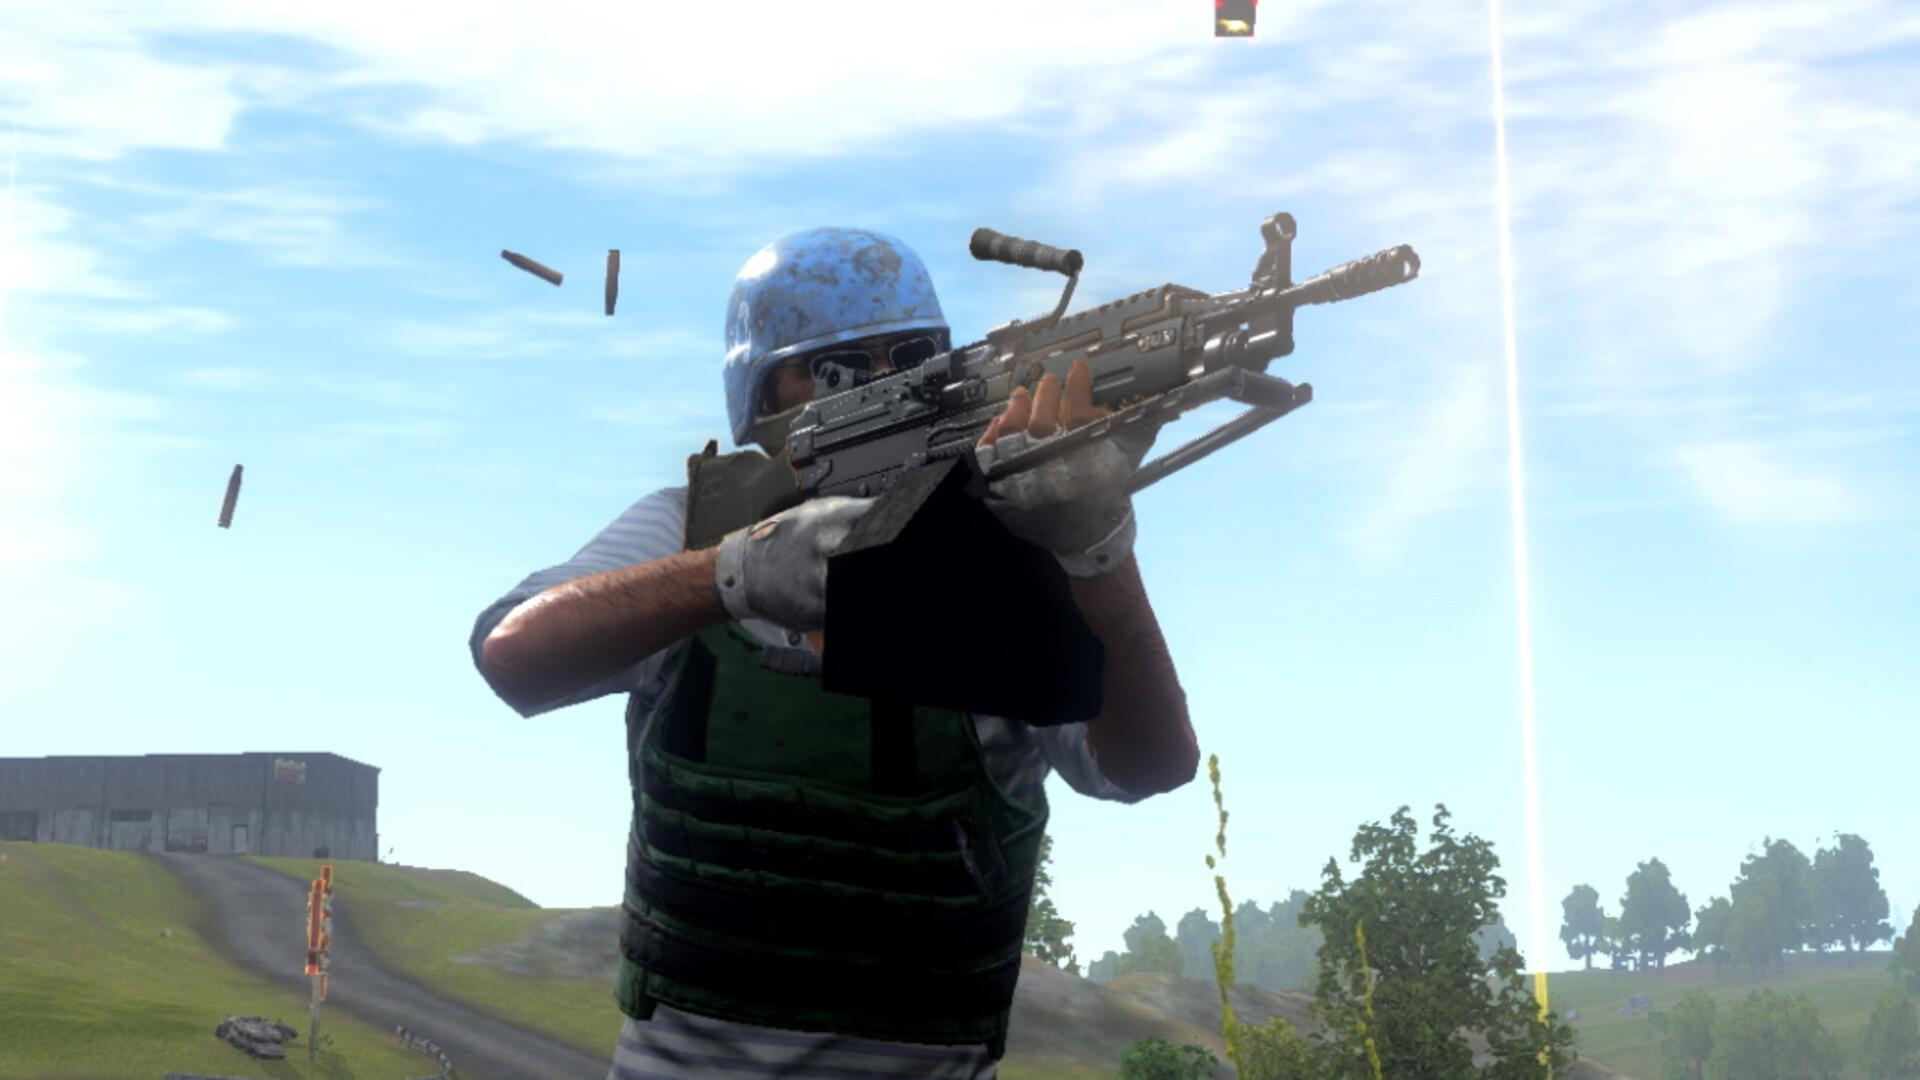 PS4 Pro Players Might Have a Gameplay Advantage in H1Z1